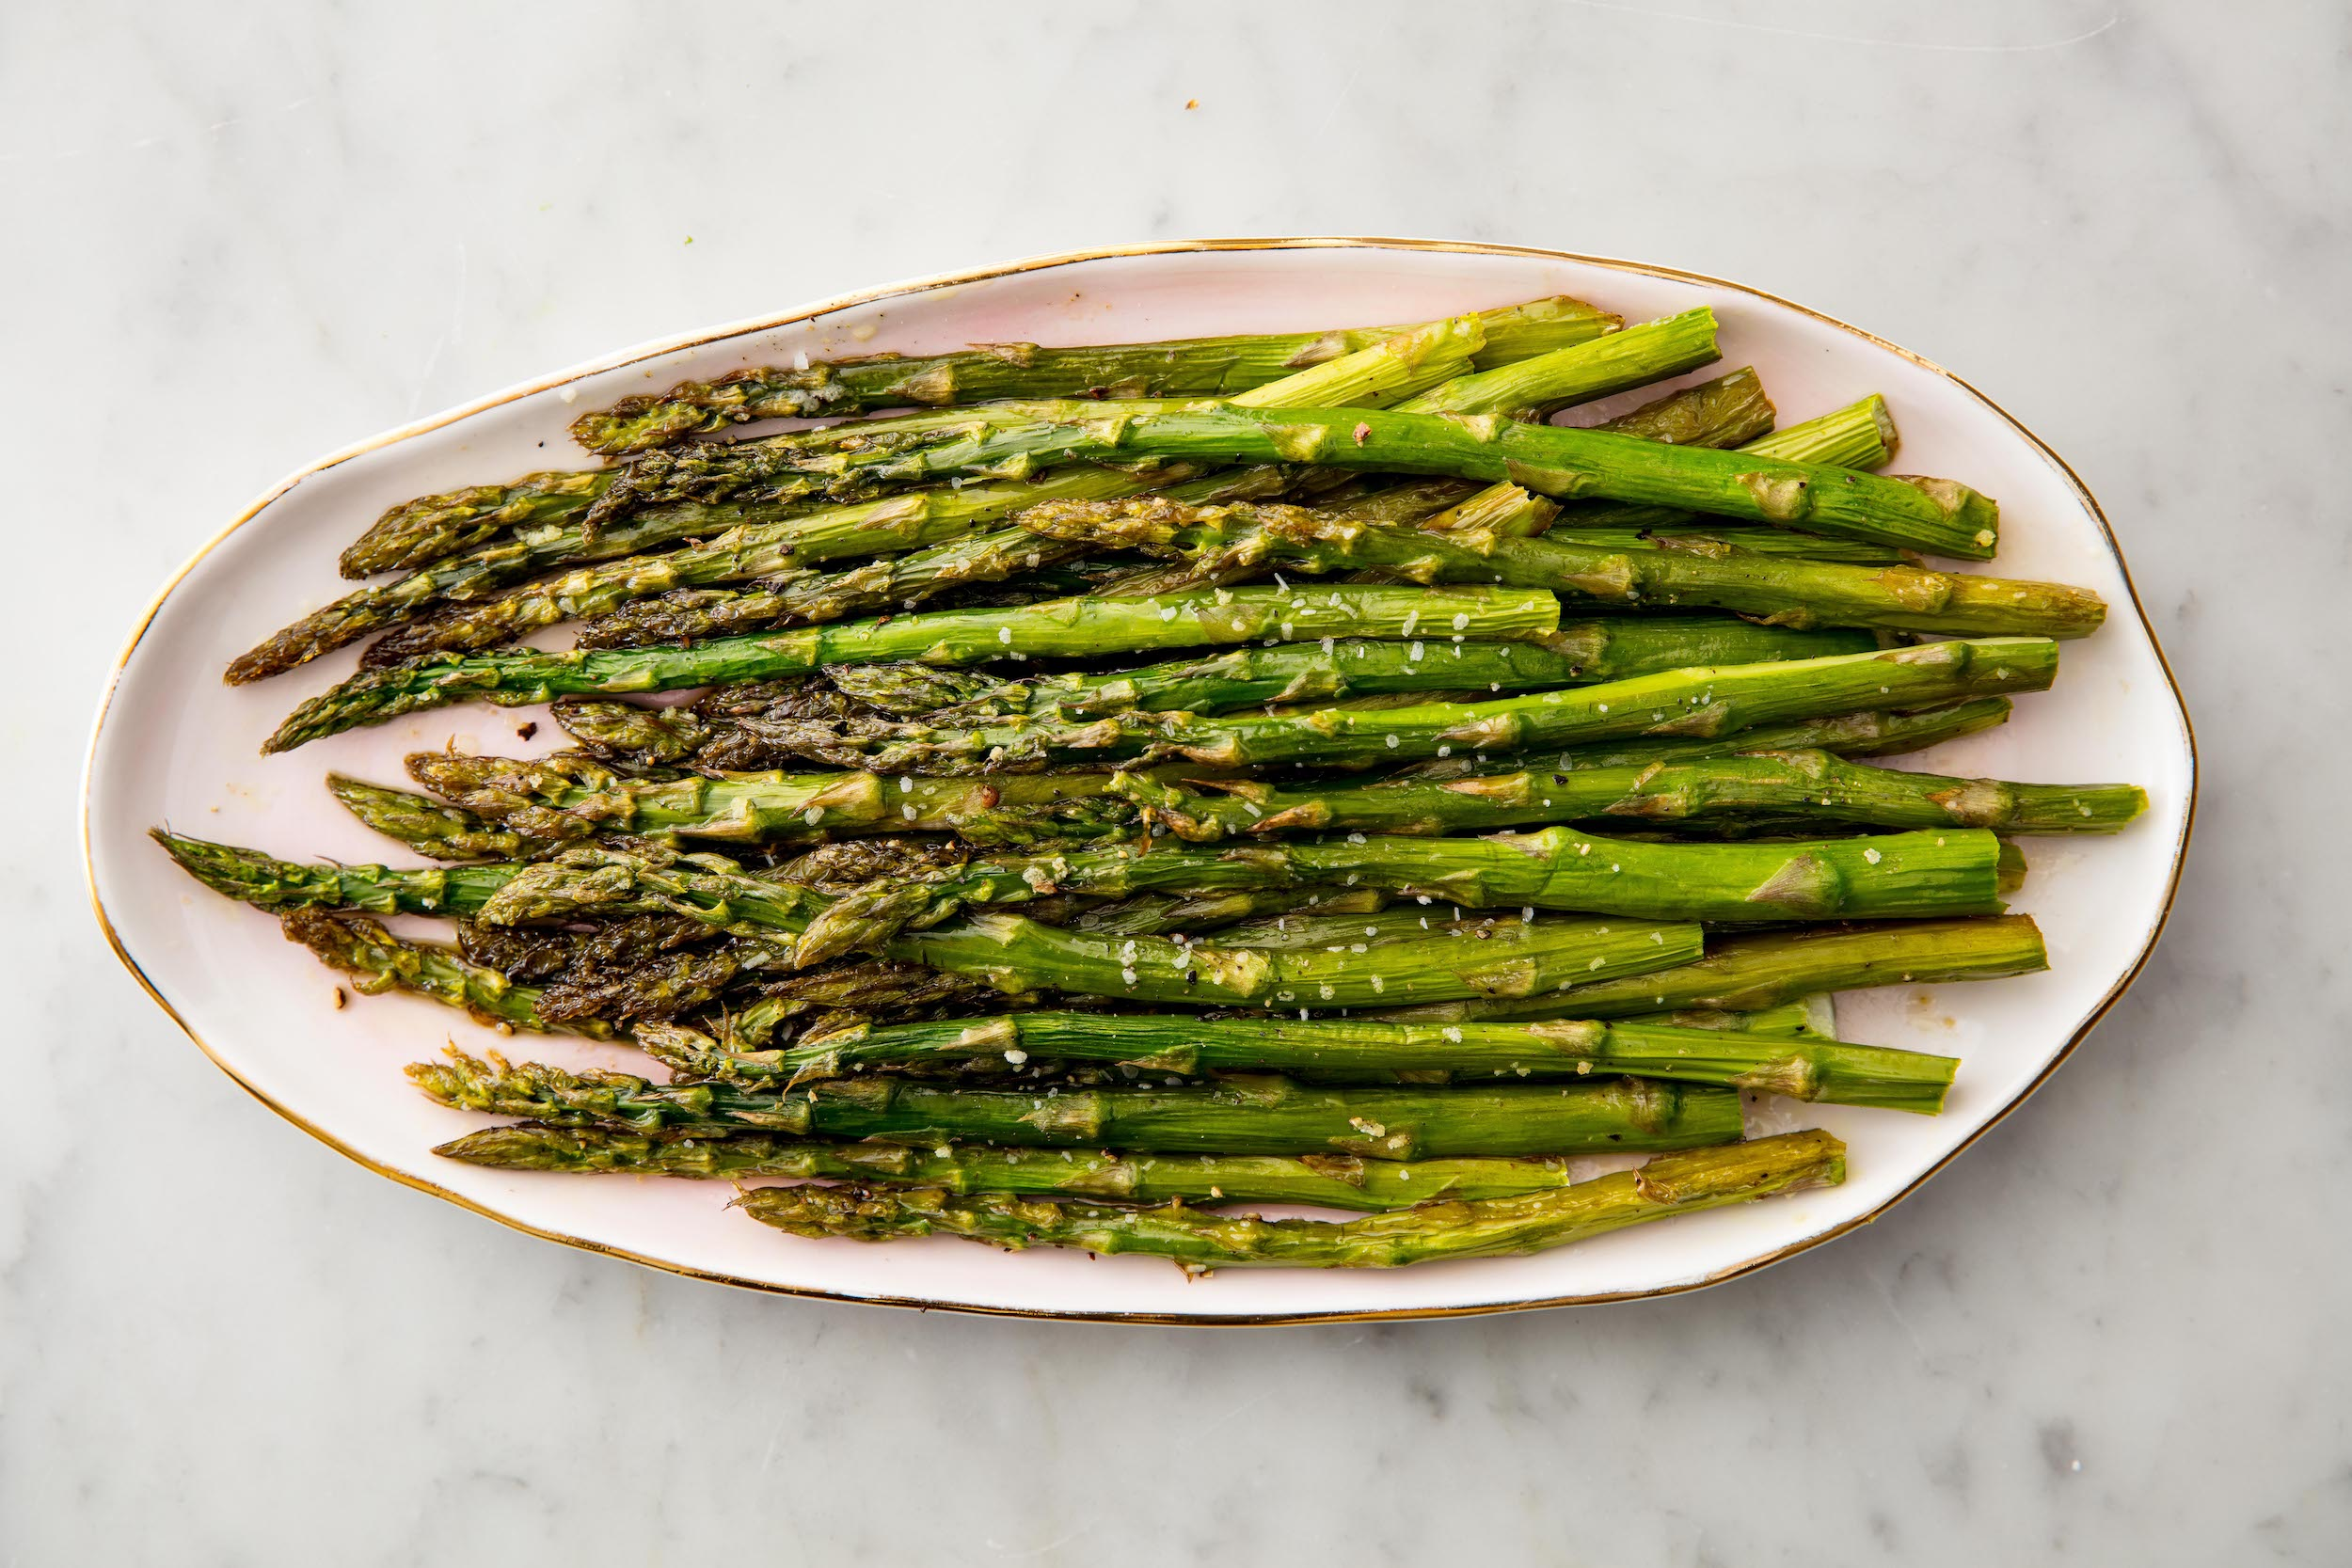 16 Best Oven Roasted Asparagus Recipes How To Bake Or